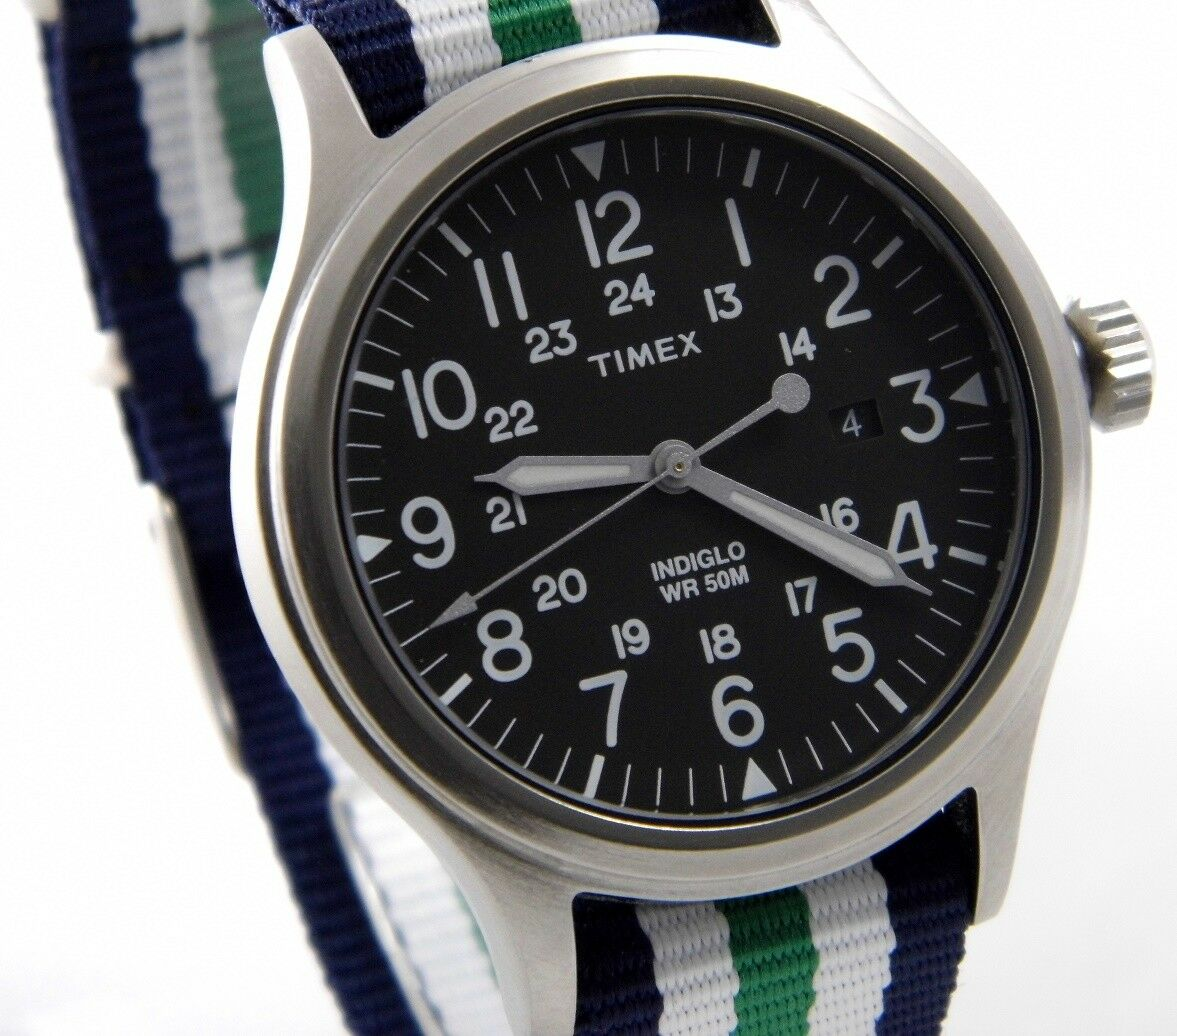 TIMEX UHR EXPEDITION SCOUT BROOK ABT010 Edelstahl Indiglo Beleuchtung > > > NEU